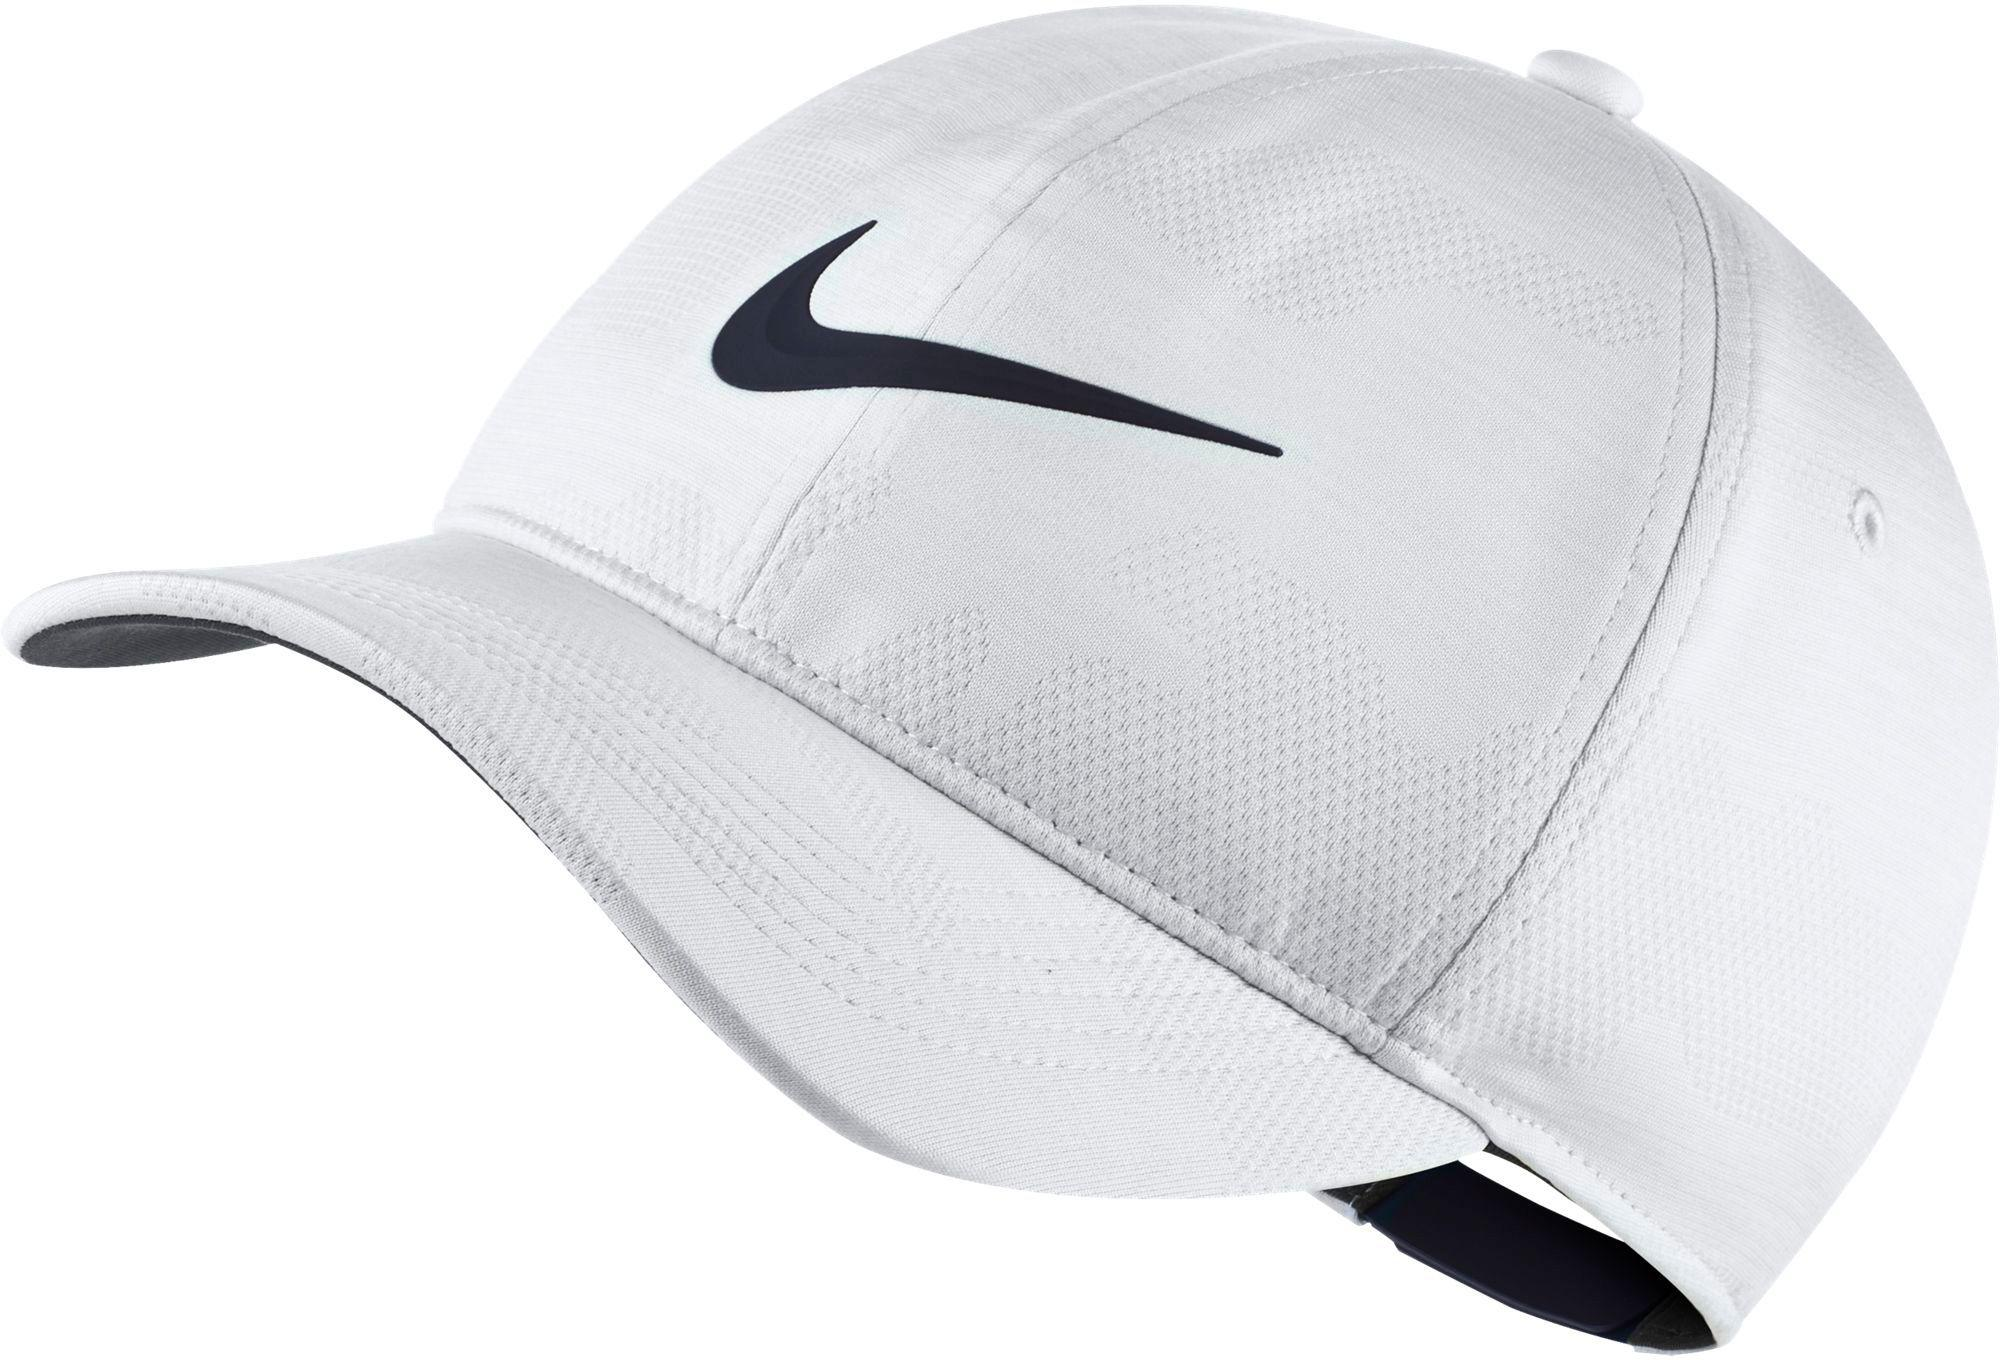 Lyst - Nike Aerobill Classic99 Golf Hat in White for Men 4dbc8ccf4f2